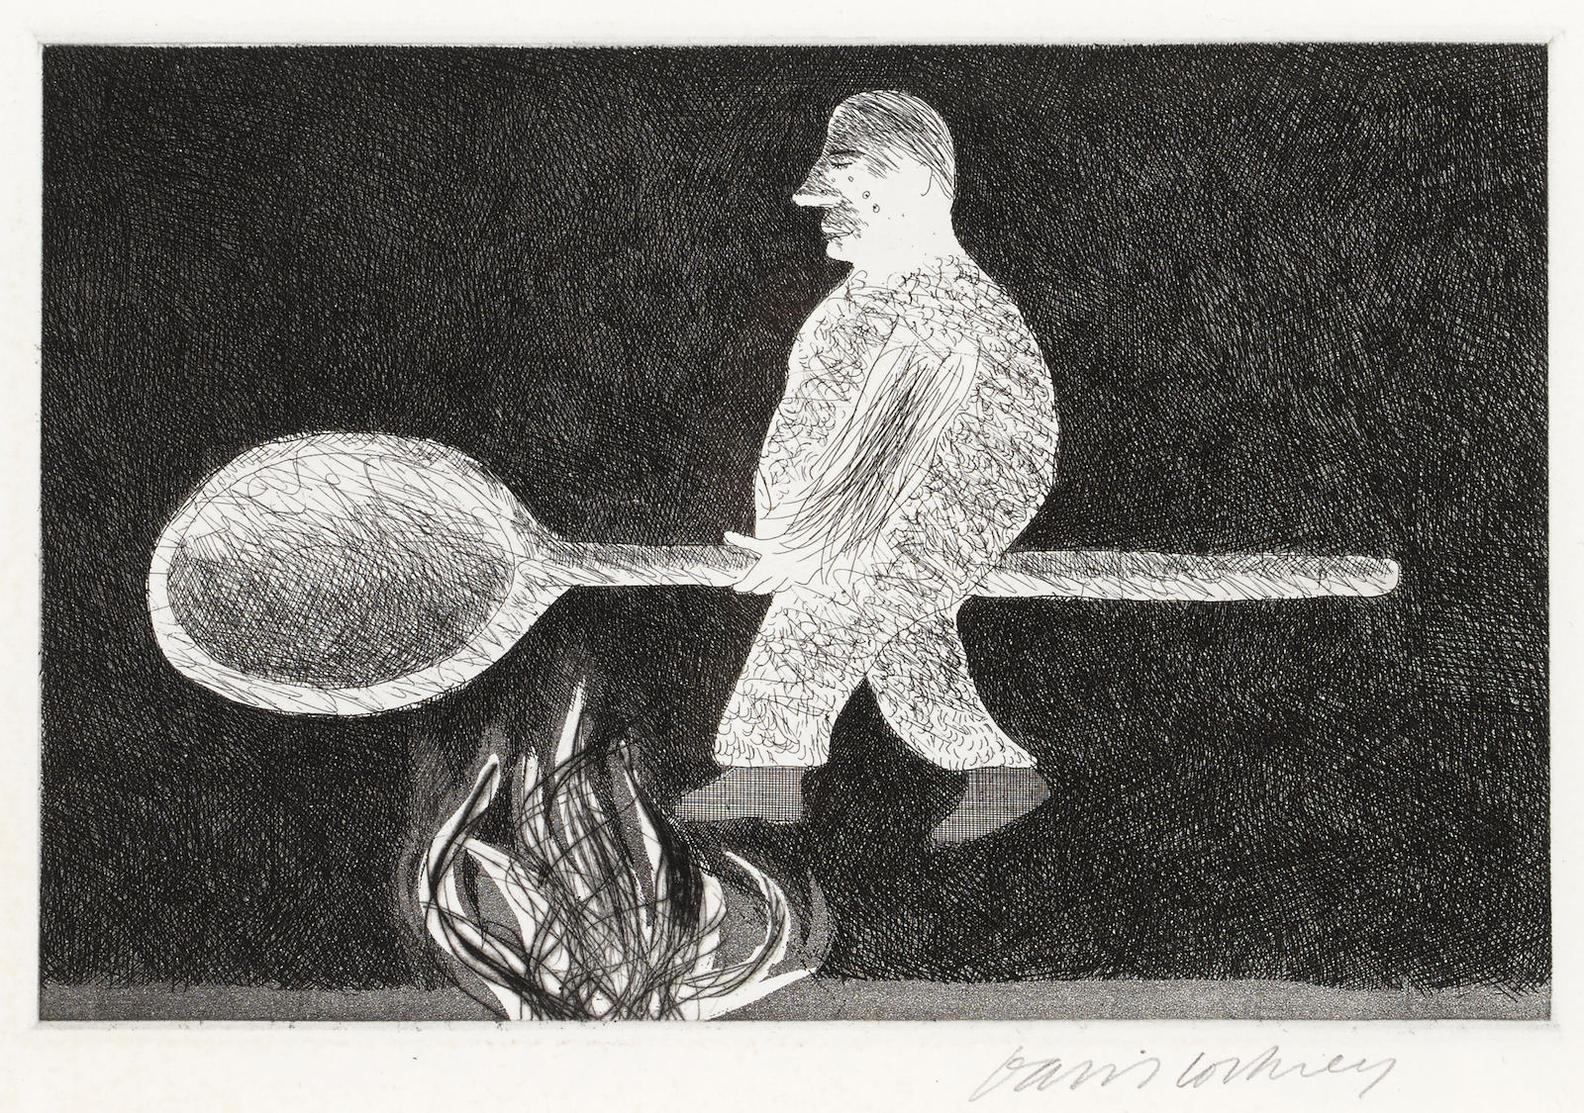 David Hockney-Riding Around On A Cooking Spoon, From Illustrations For Six Fairy Tales From The Brothers Grimm-1969